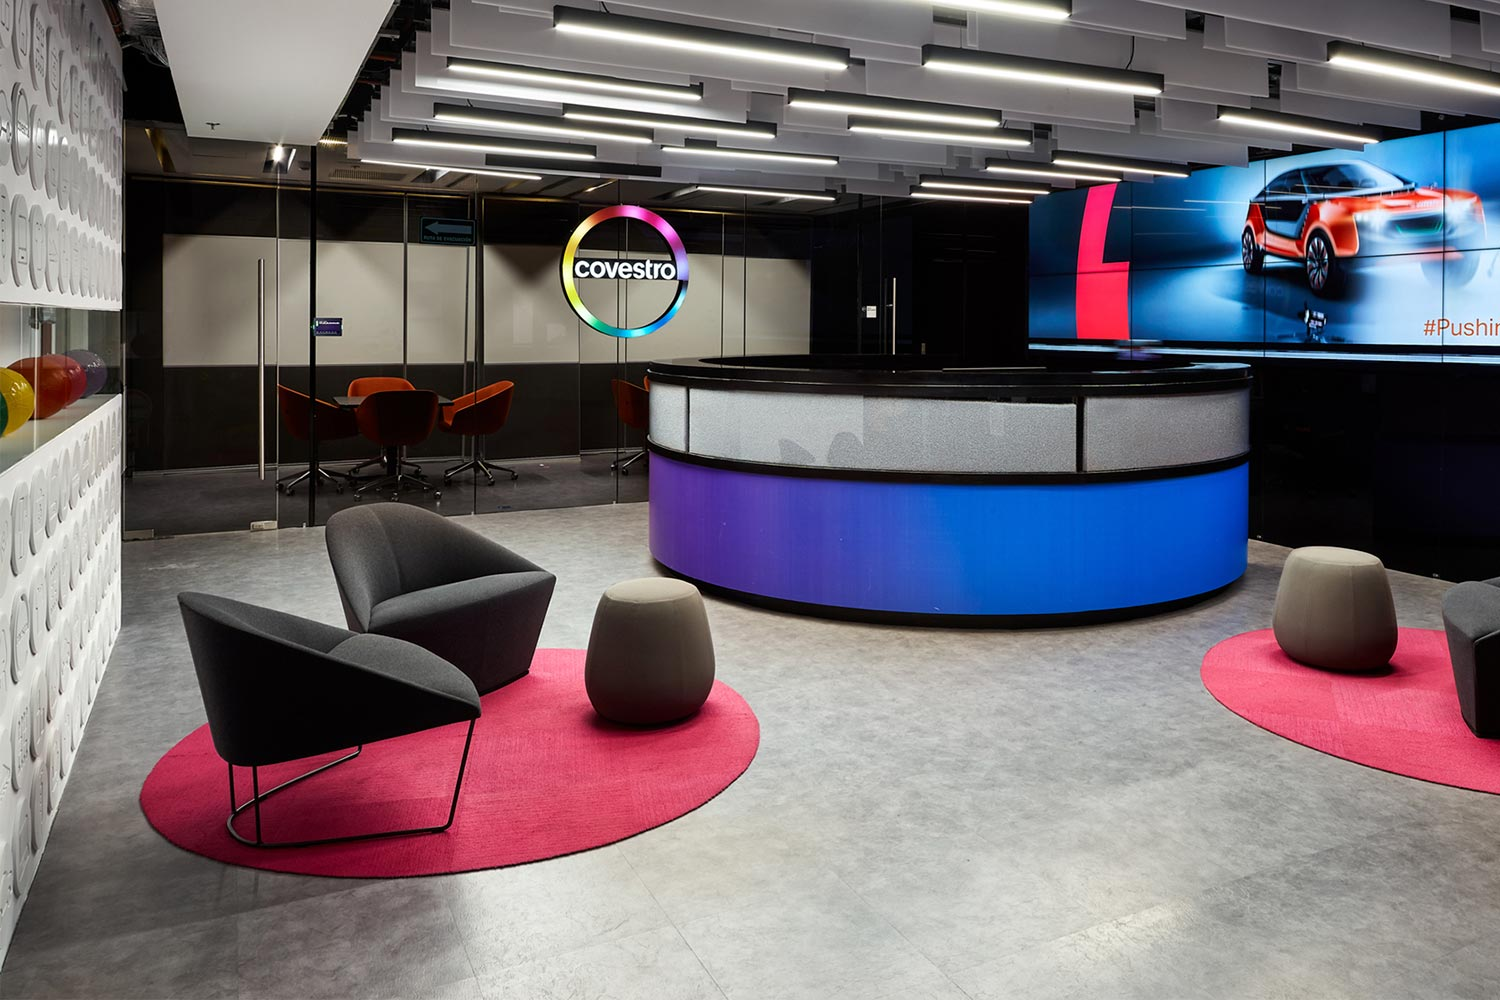 Projects_1500_Covestro_2.jpg